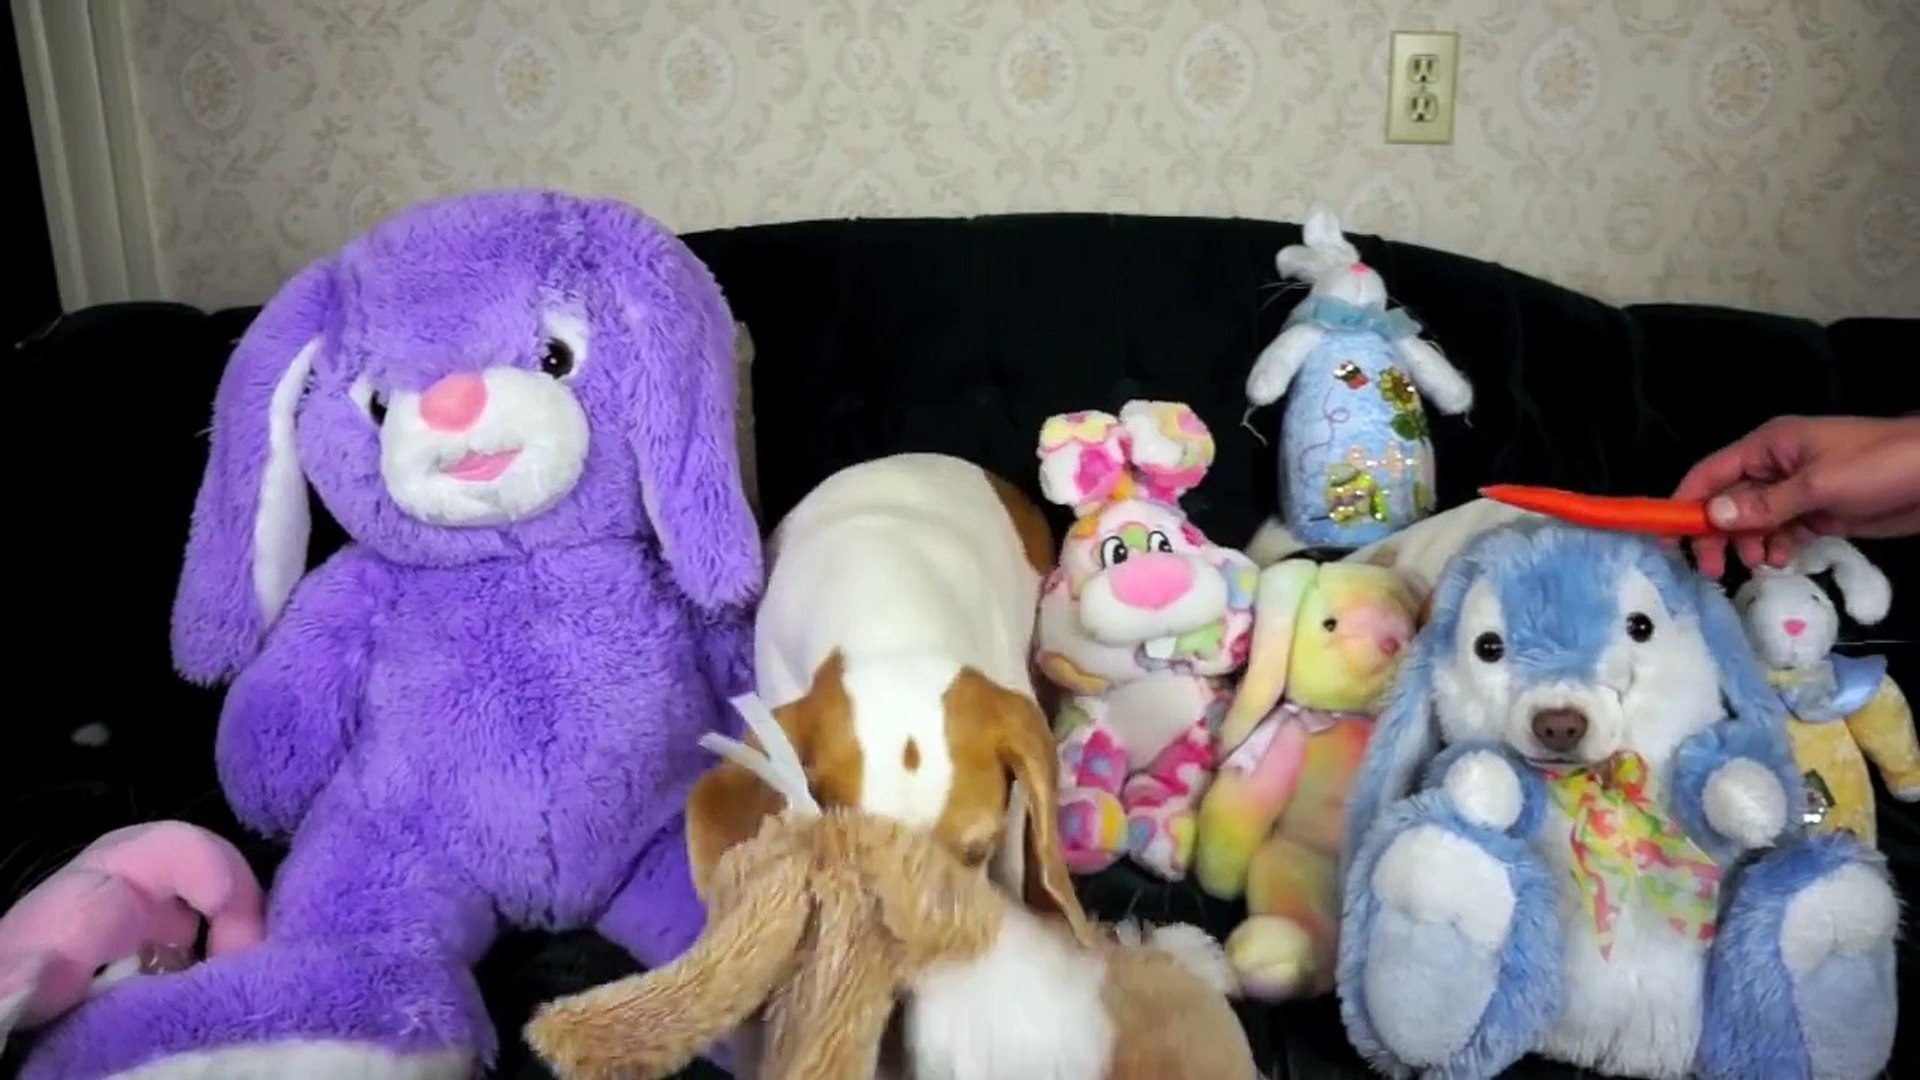 Stuffed Bunnies Come to Life- Funny Dogs Maymo & Penny